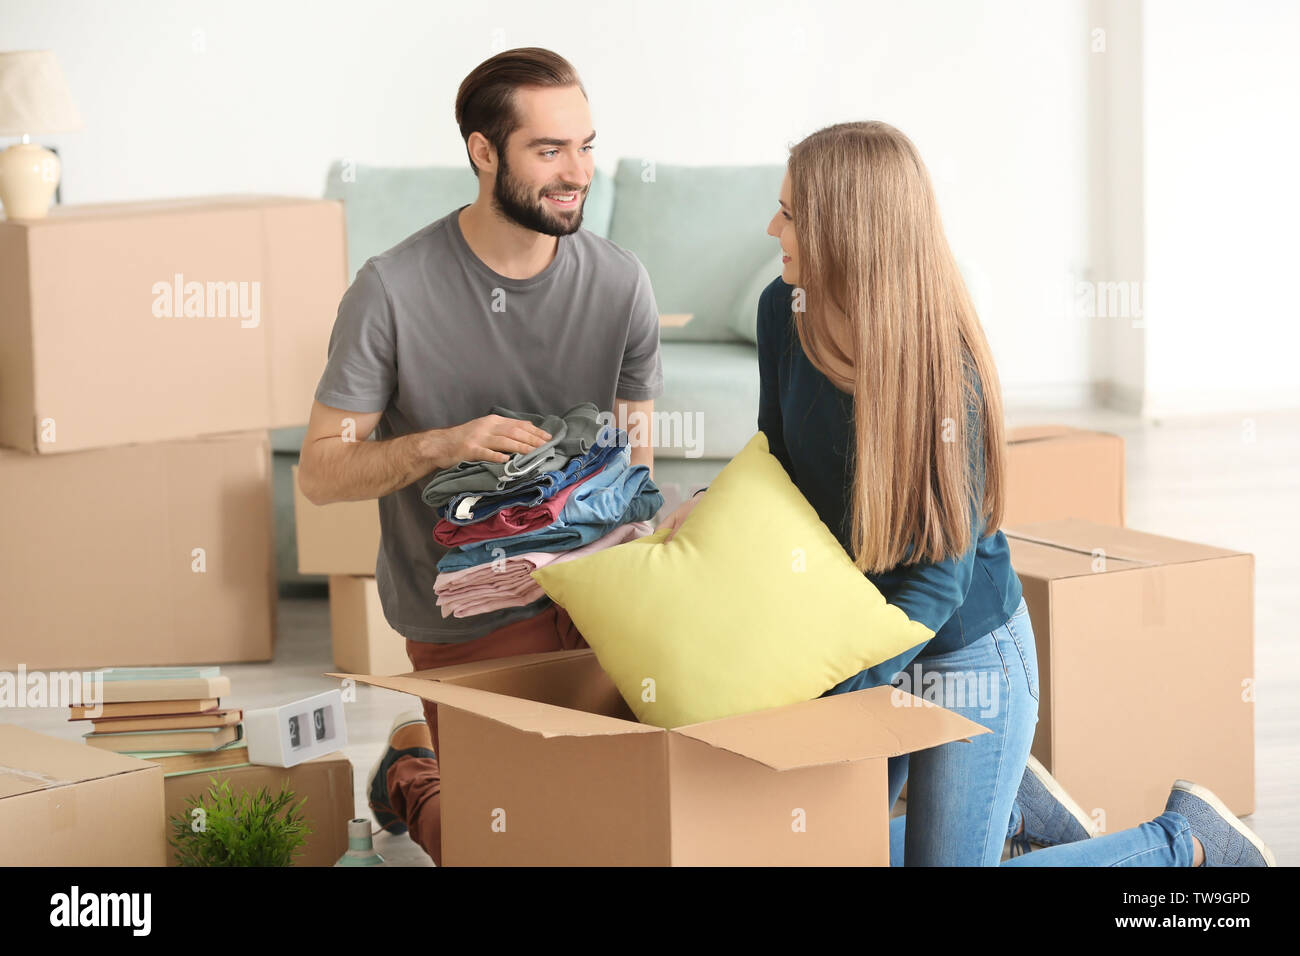 Young couple packing moving boxes in room - Stock Image